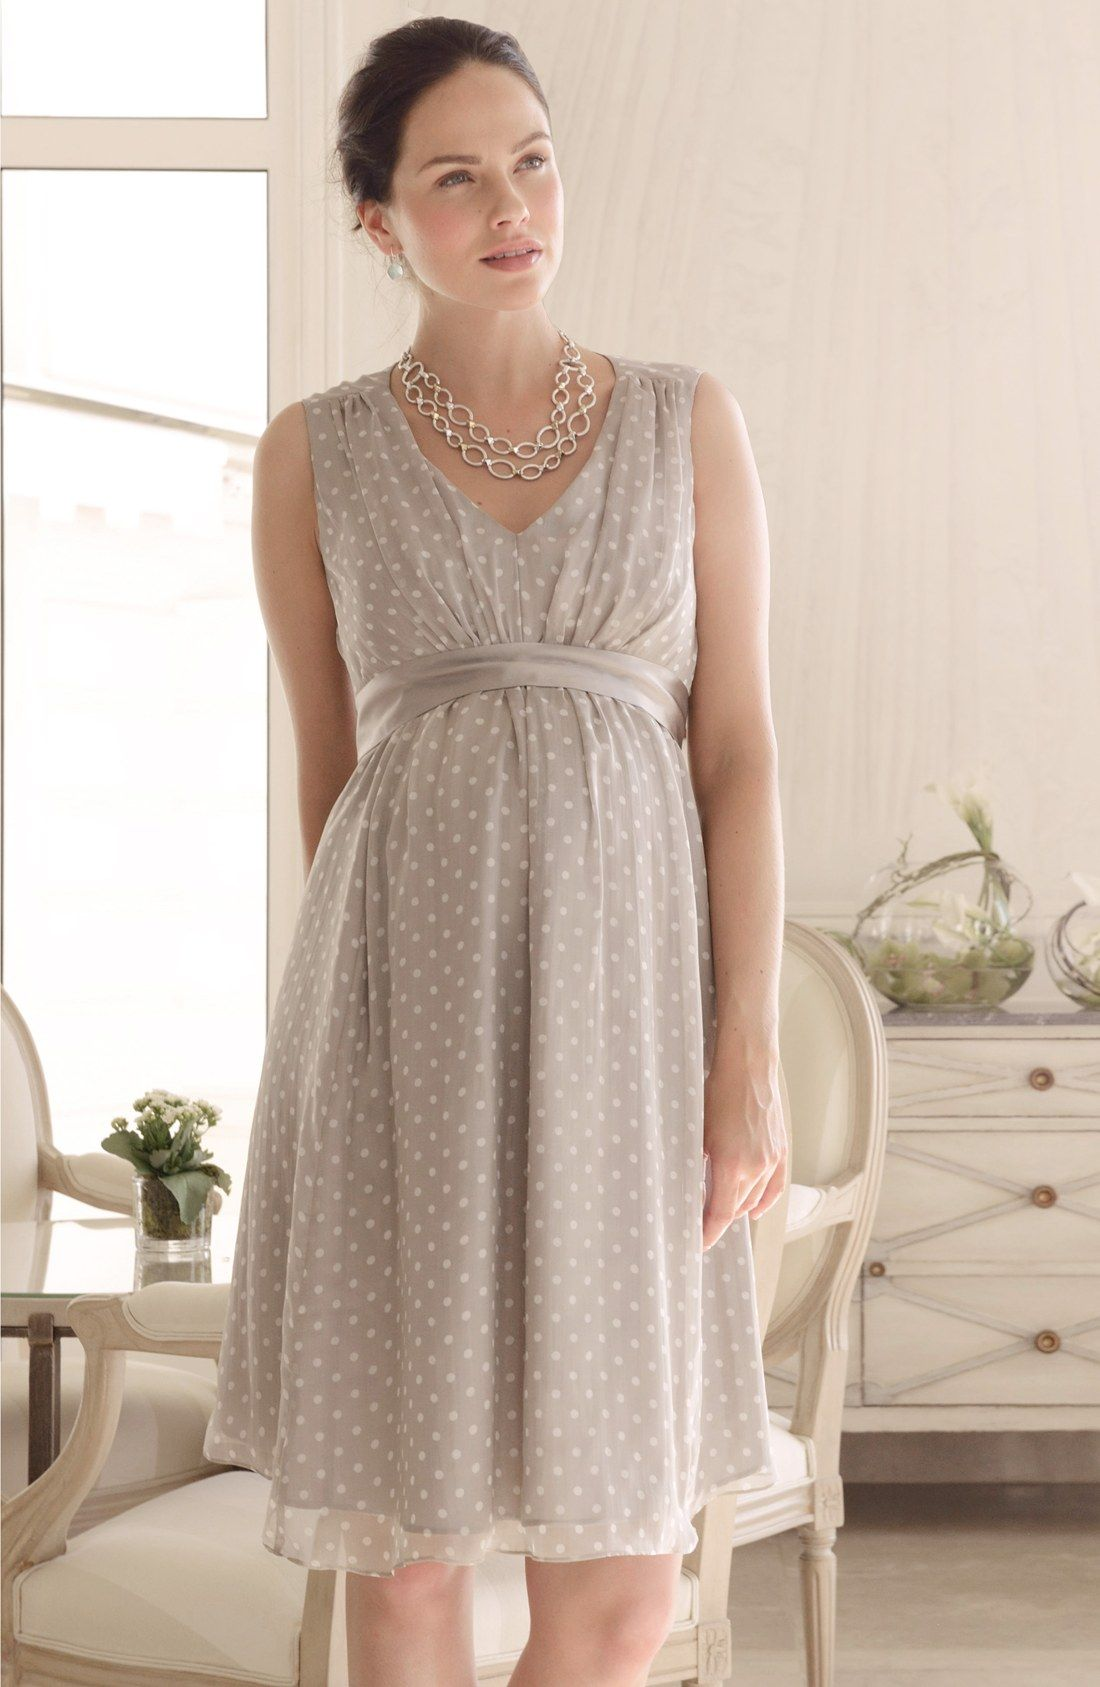 seraphine silk chiffon maternity dress bridesmaid